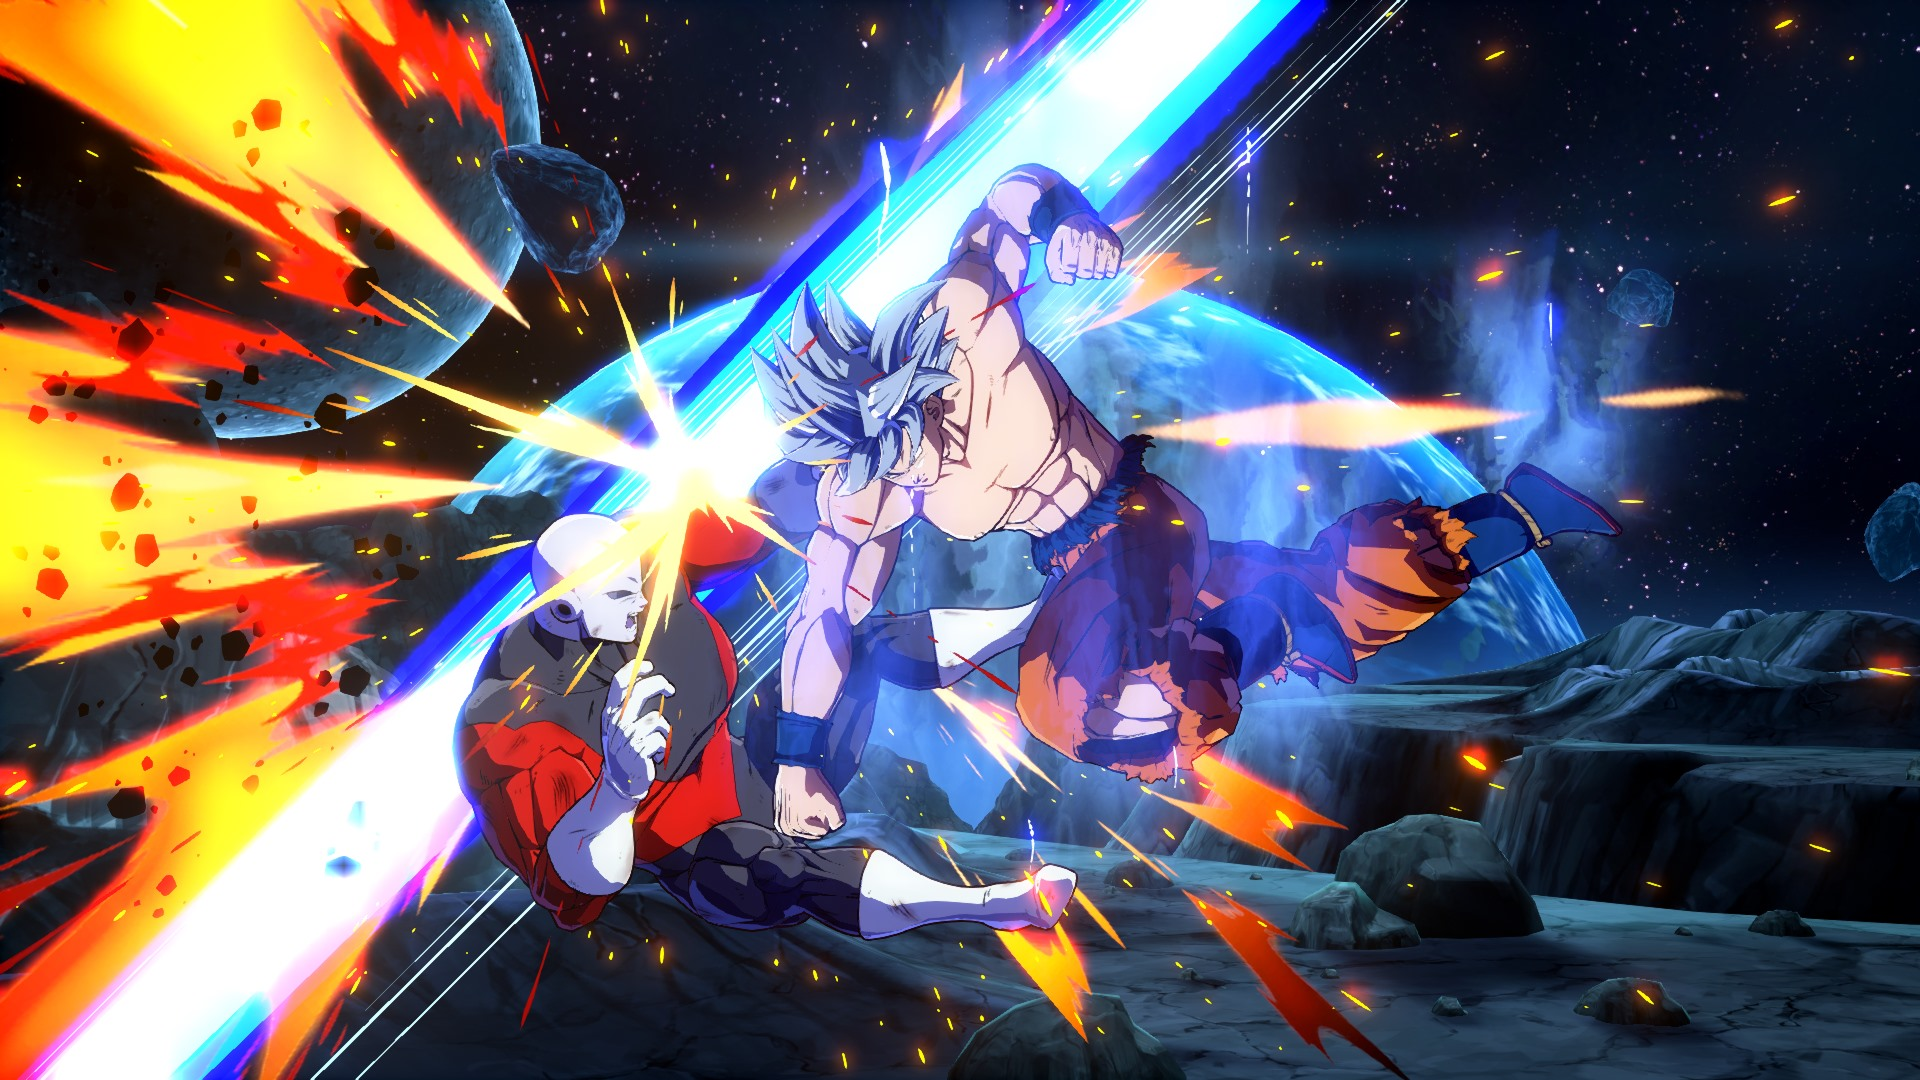 Dragon Ball FighterZ DLC Character Goku Ultra Instinct Screen 19